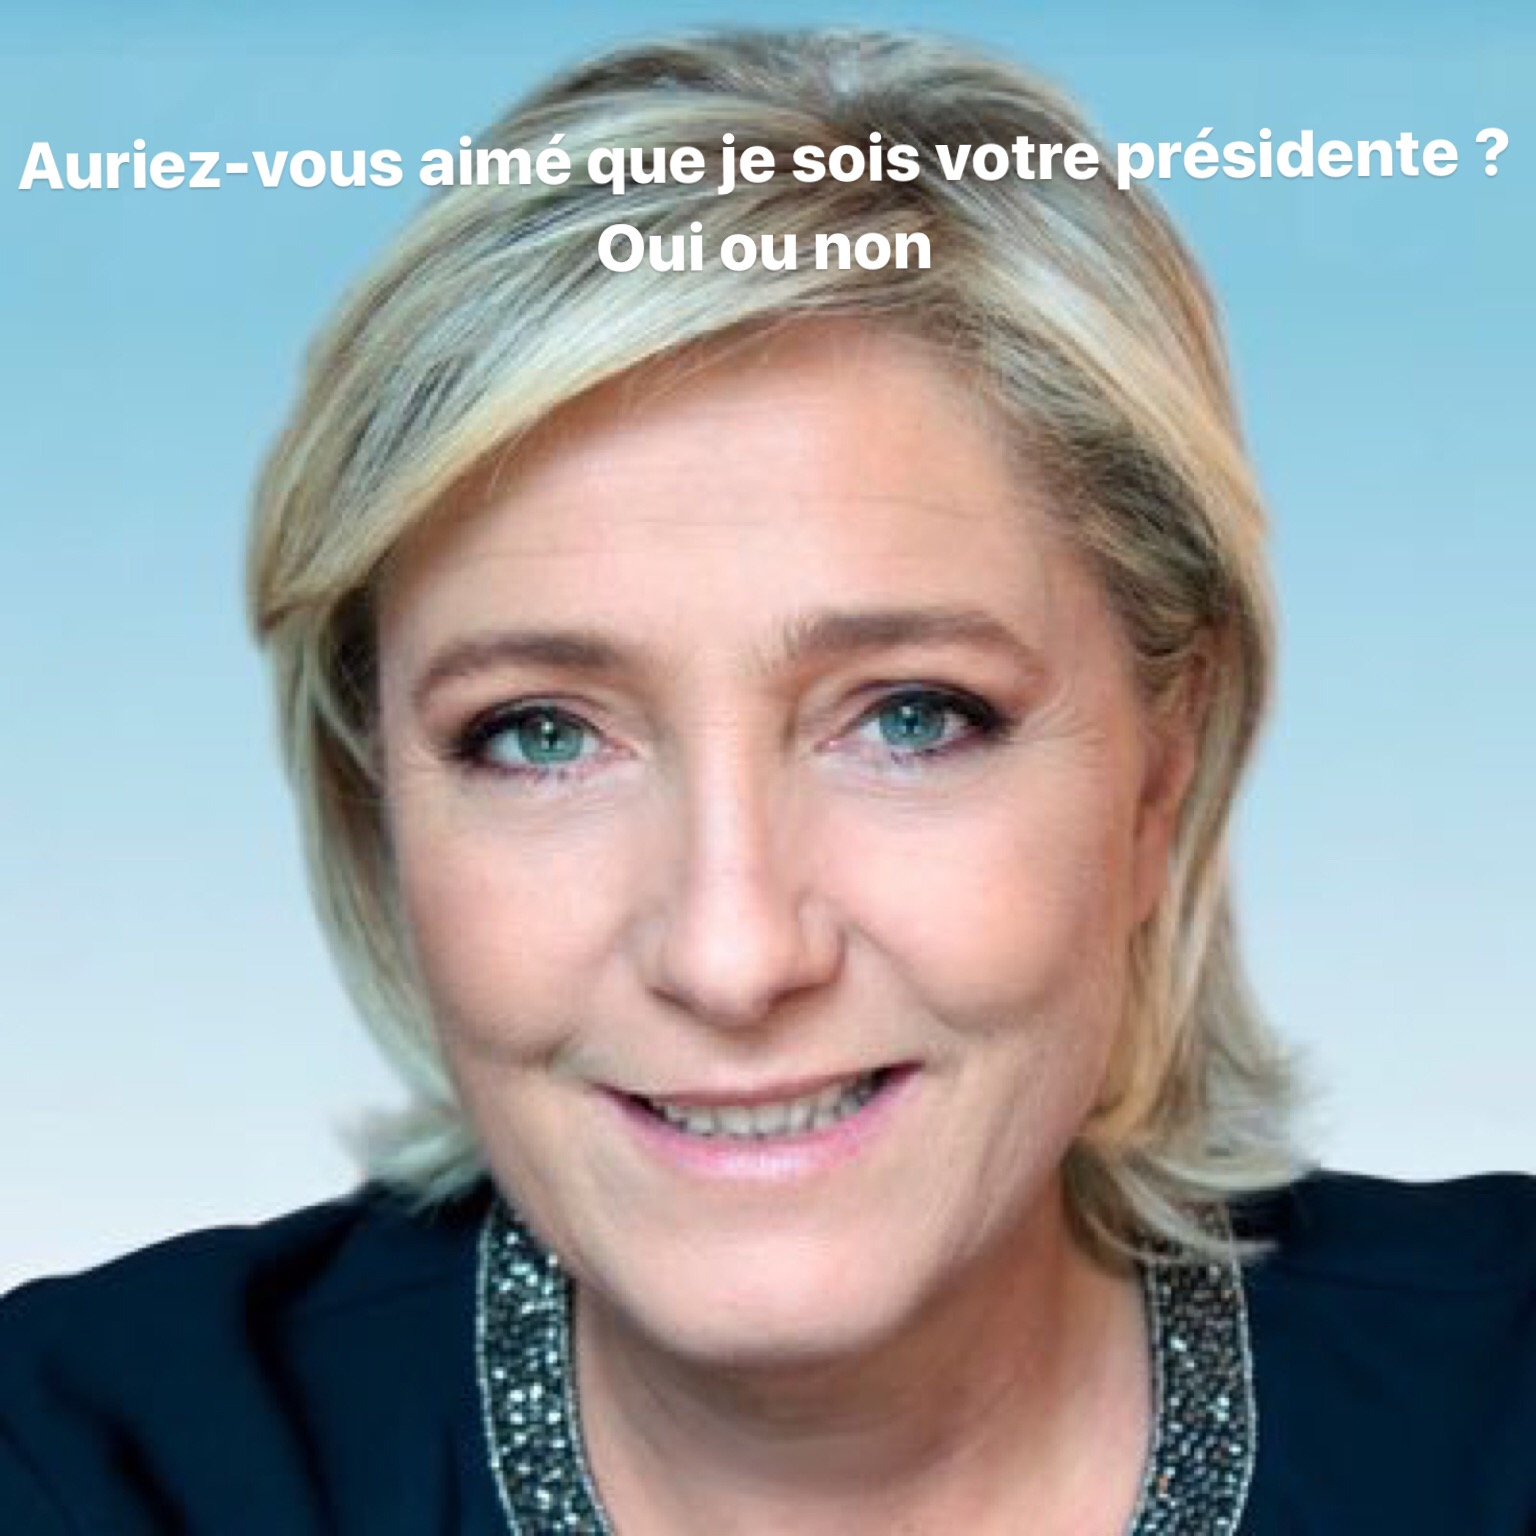 Photo Twitter de Marine Le Pen